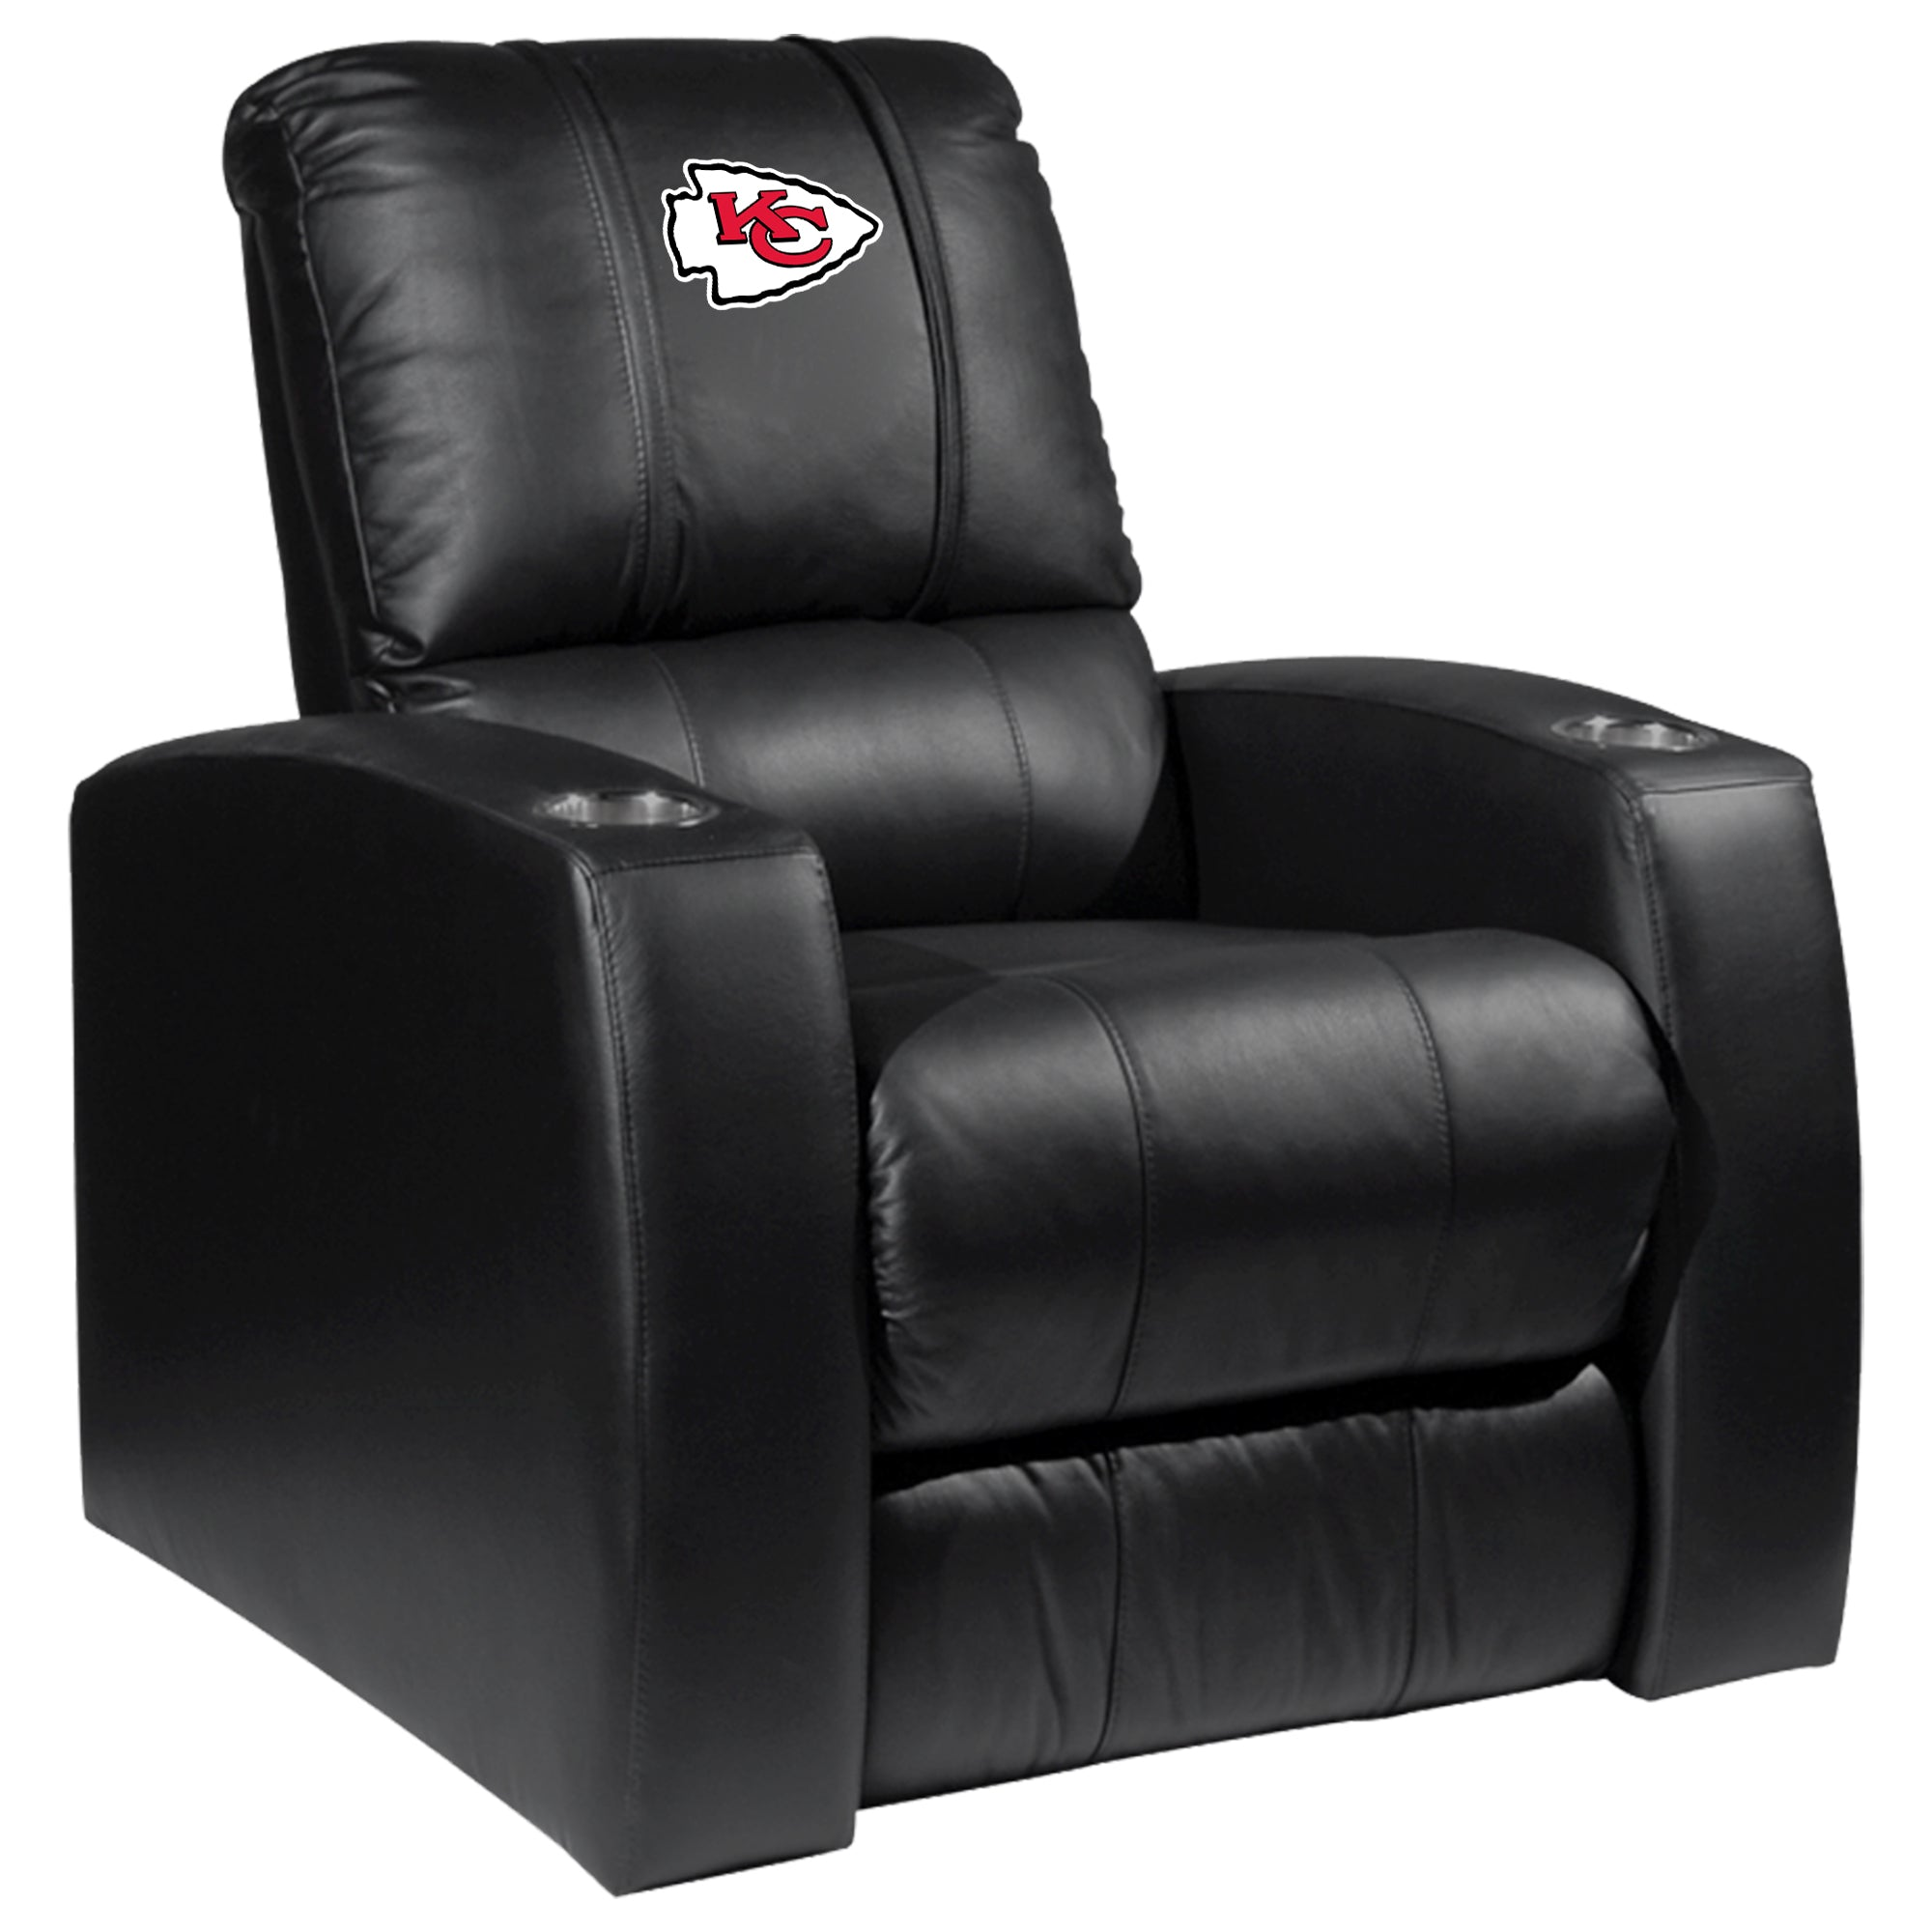 Relax Recliner with  Kansas City Chiefs Primary Logo